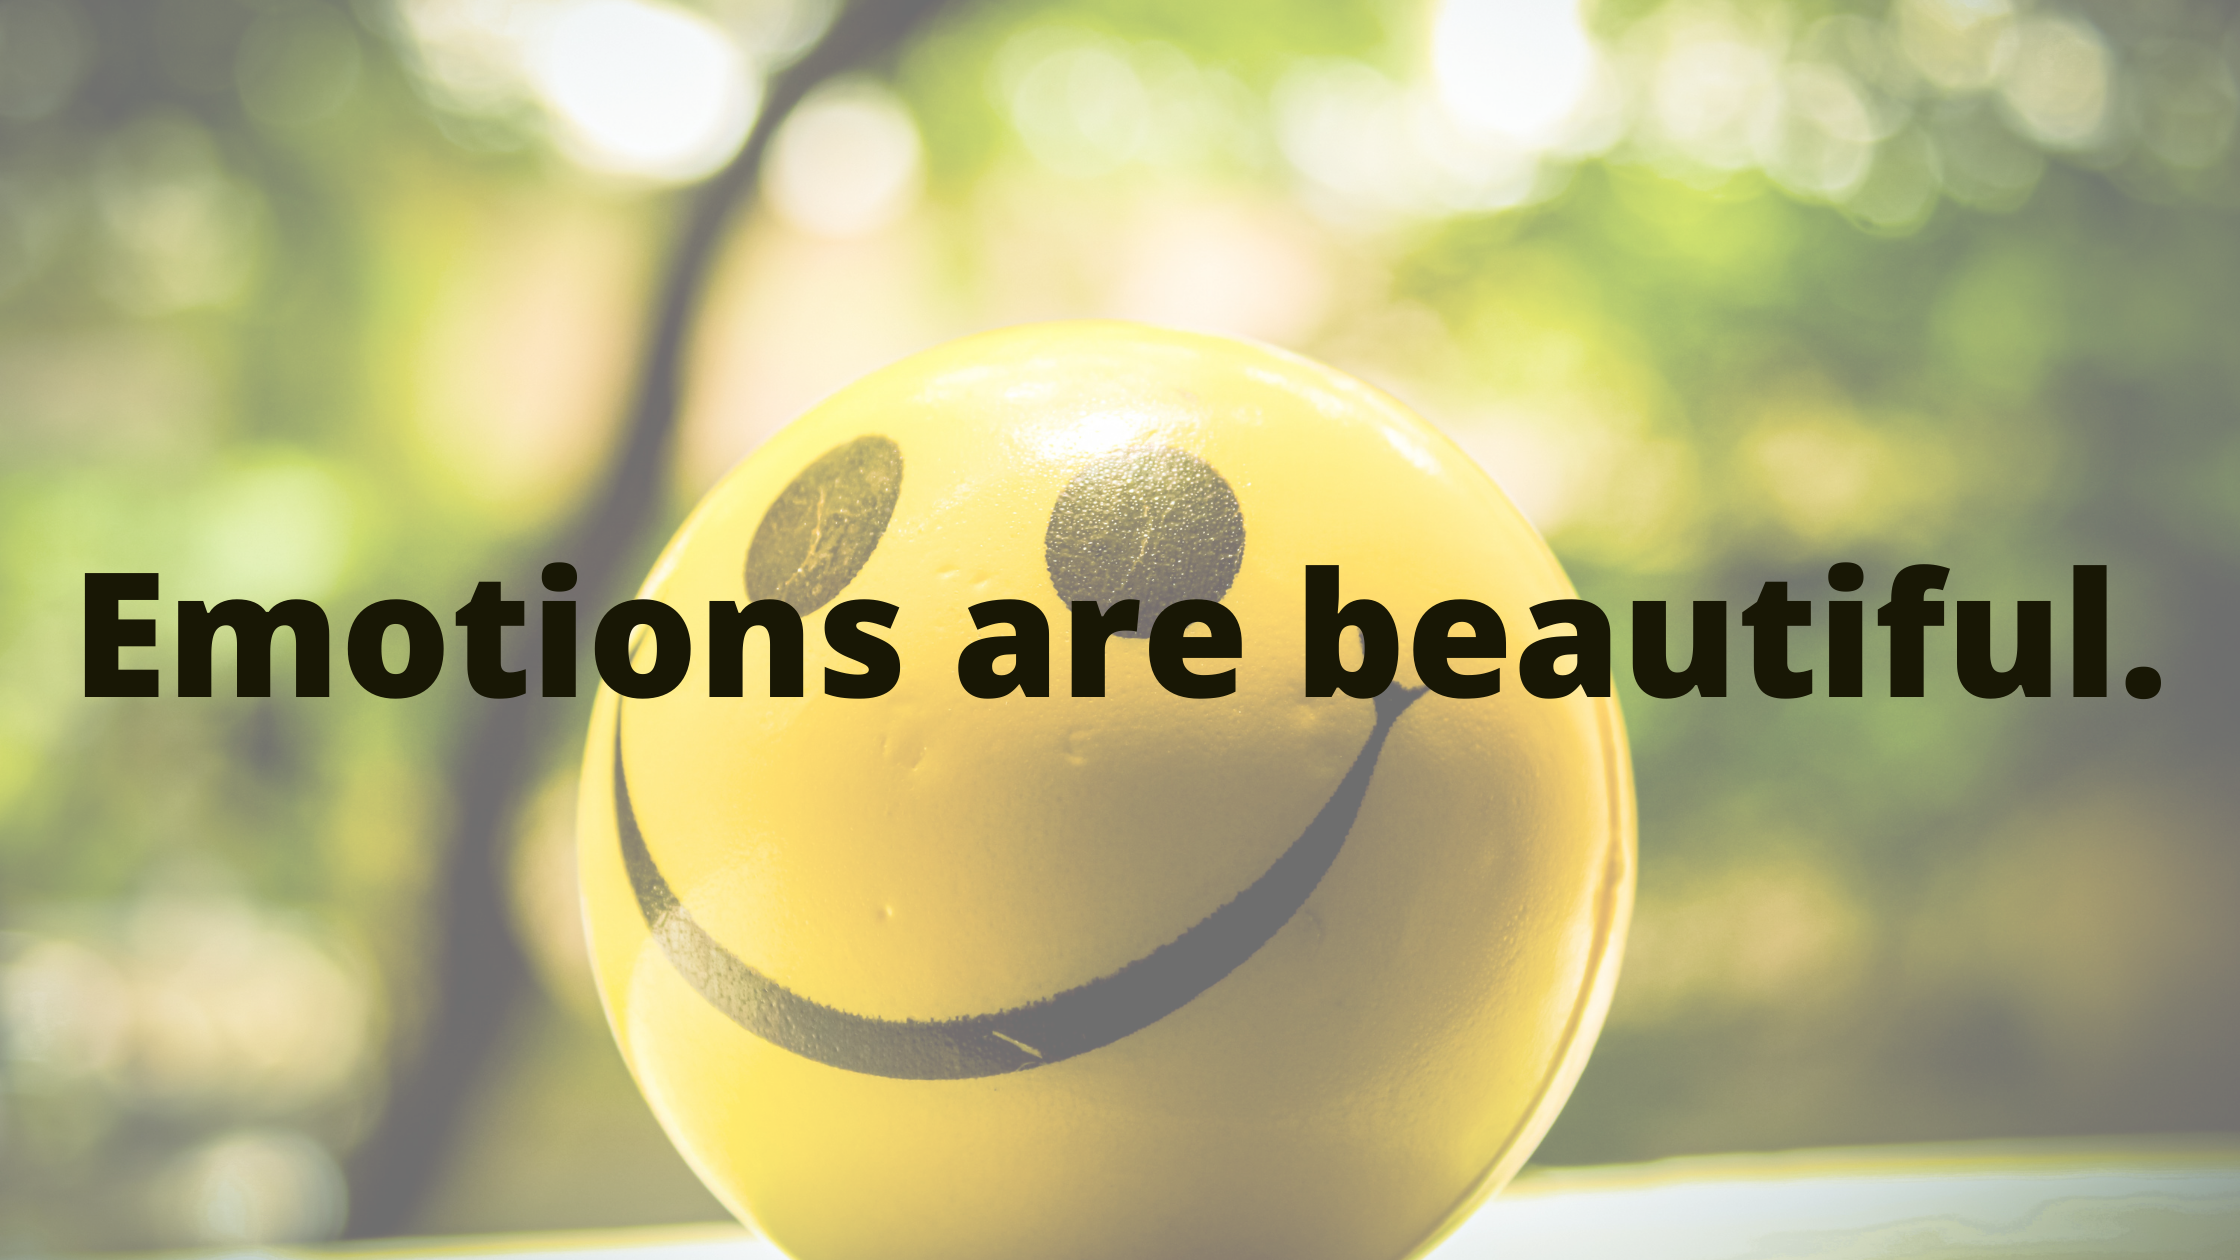 Emotions are very beautiful.